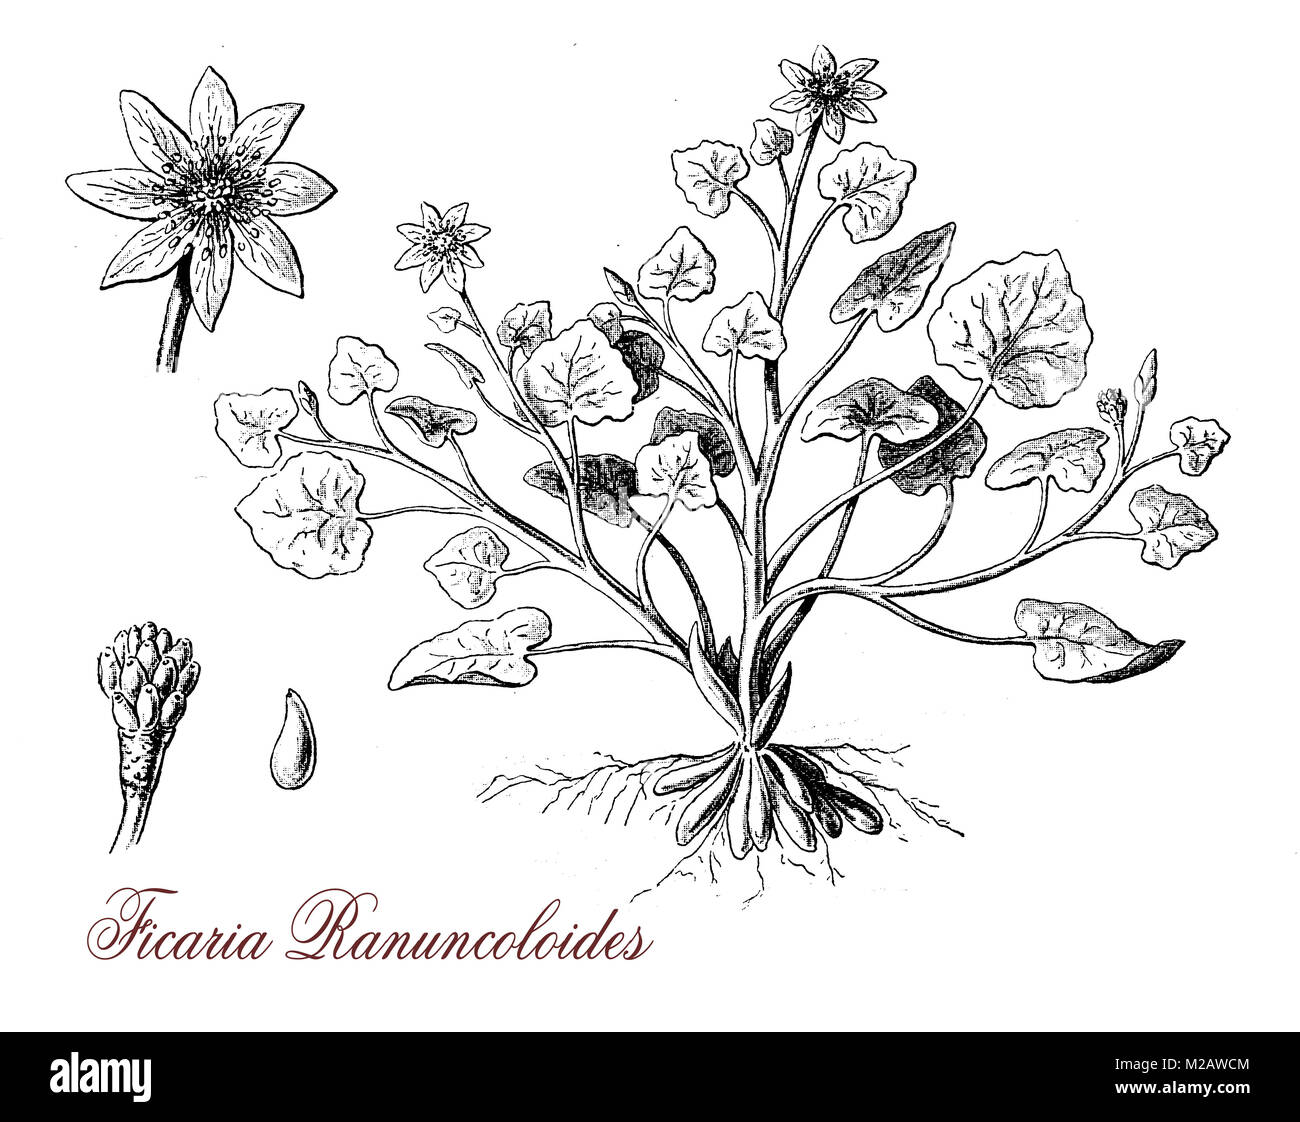 vintage engraving of ficaria ranuncoloides, flowering plant with jellow glossy flowers, poisonous, deadly if ingested - Stock Image